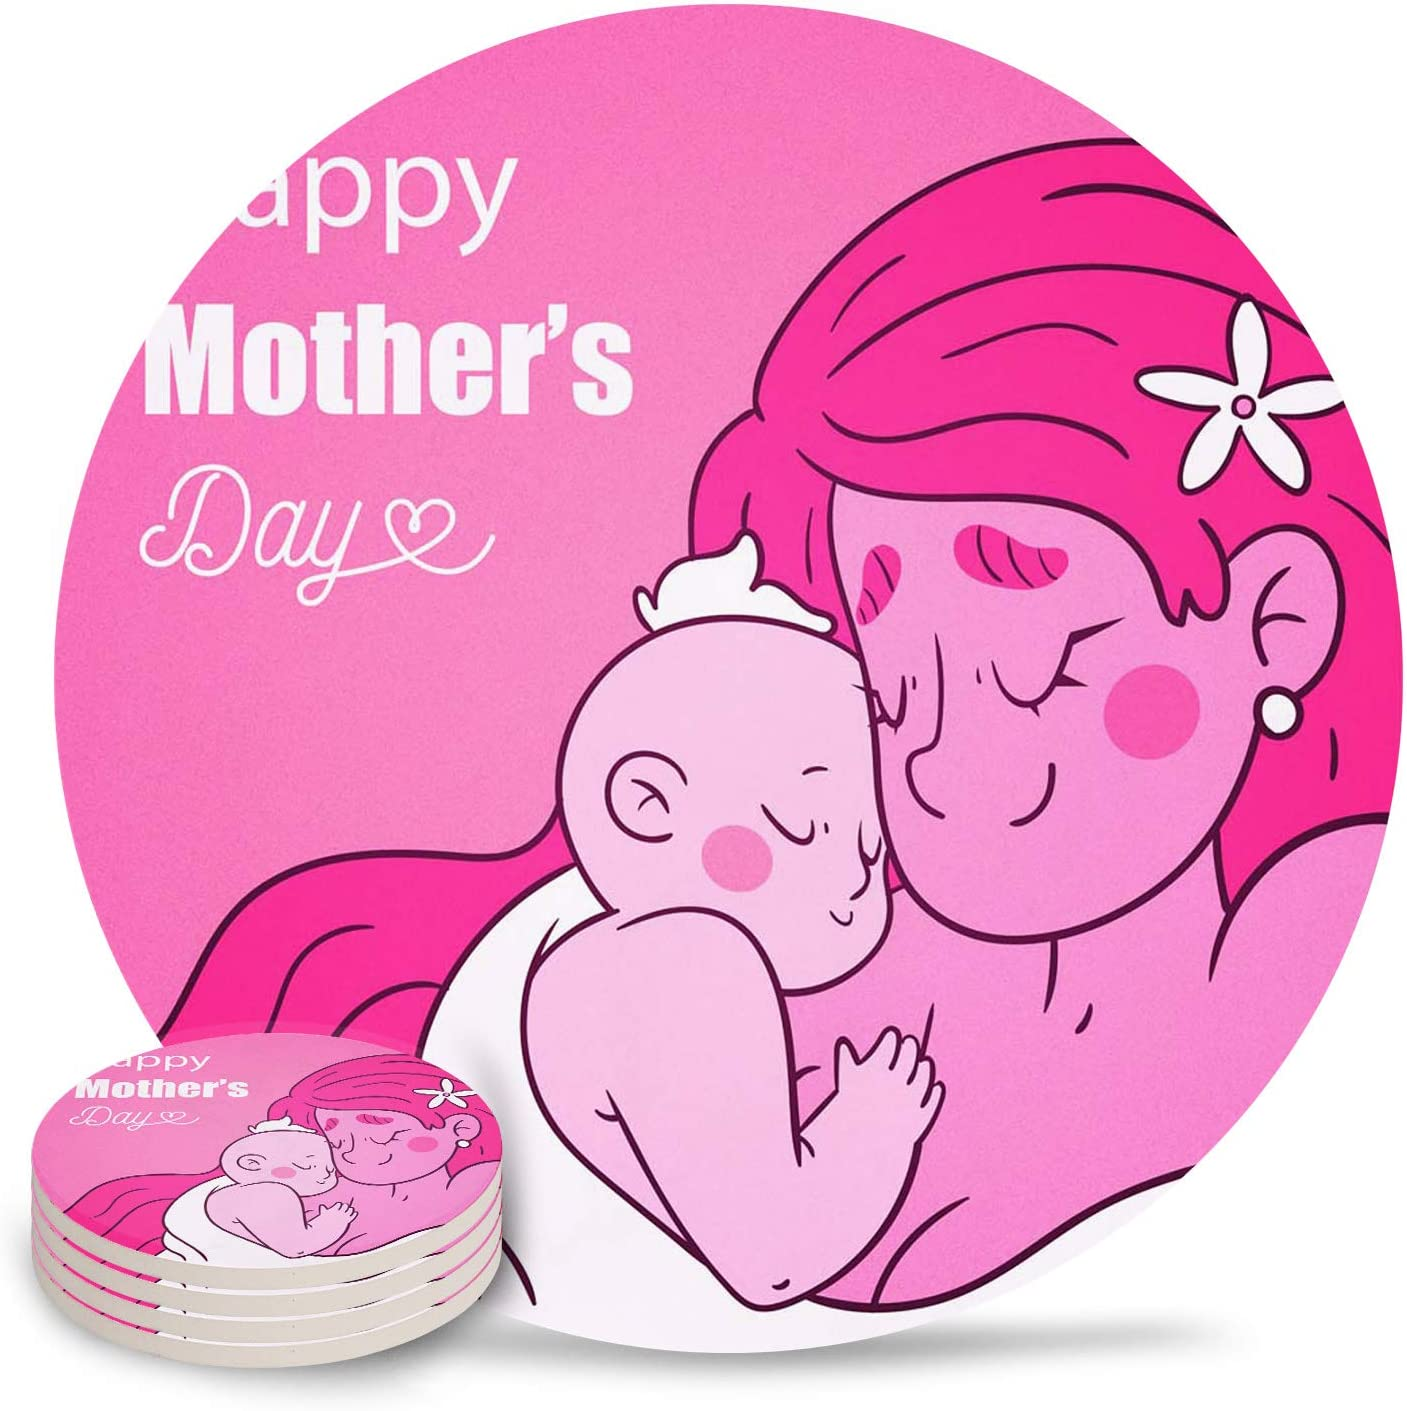 Drink 1 year warranty Coasters Happy Mother's Day Absorbent C Stone High material Baby Cartoon